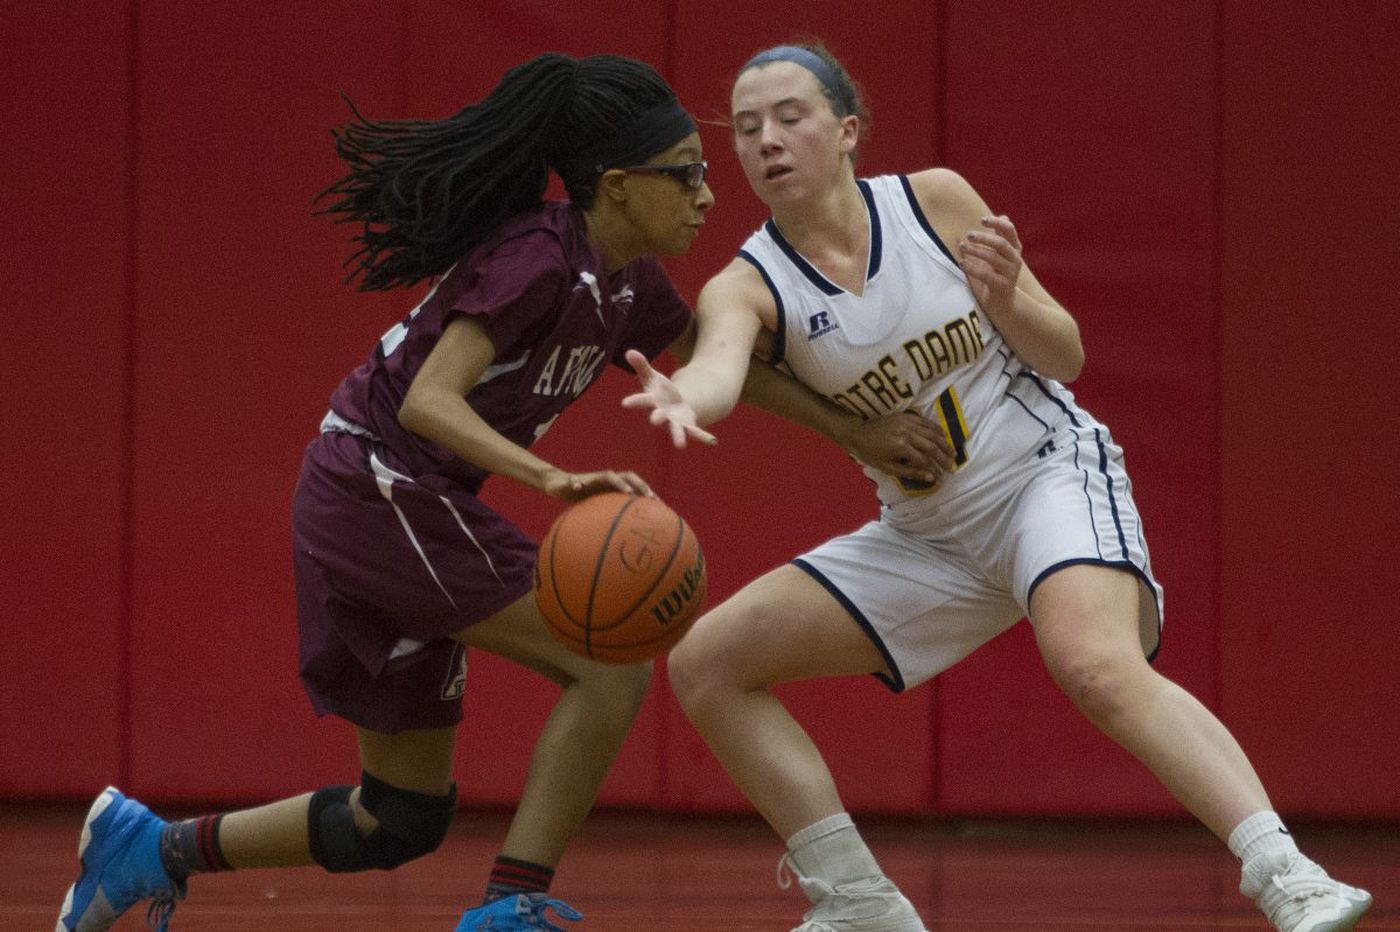 Friday's Pa. roundup: Notre Dame girls' basketball advances to PAISAA title game thanks to late free throw in double overtime